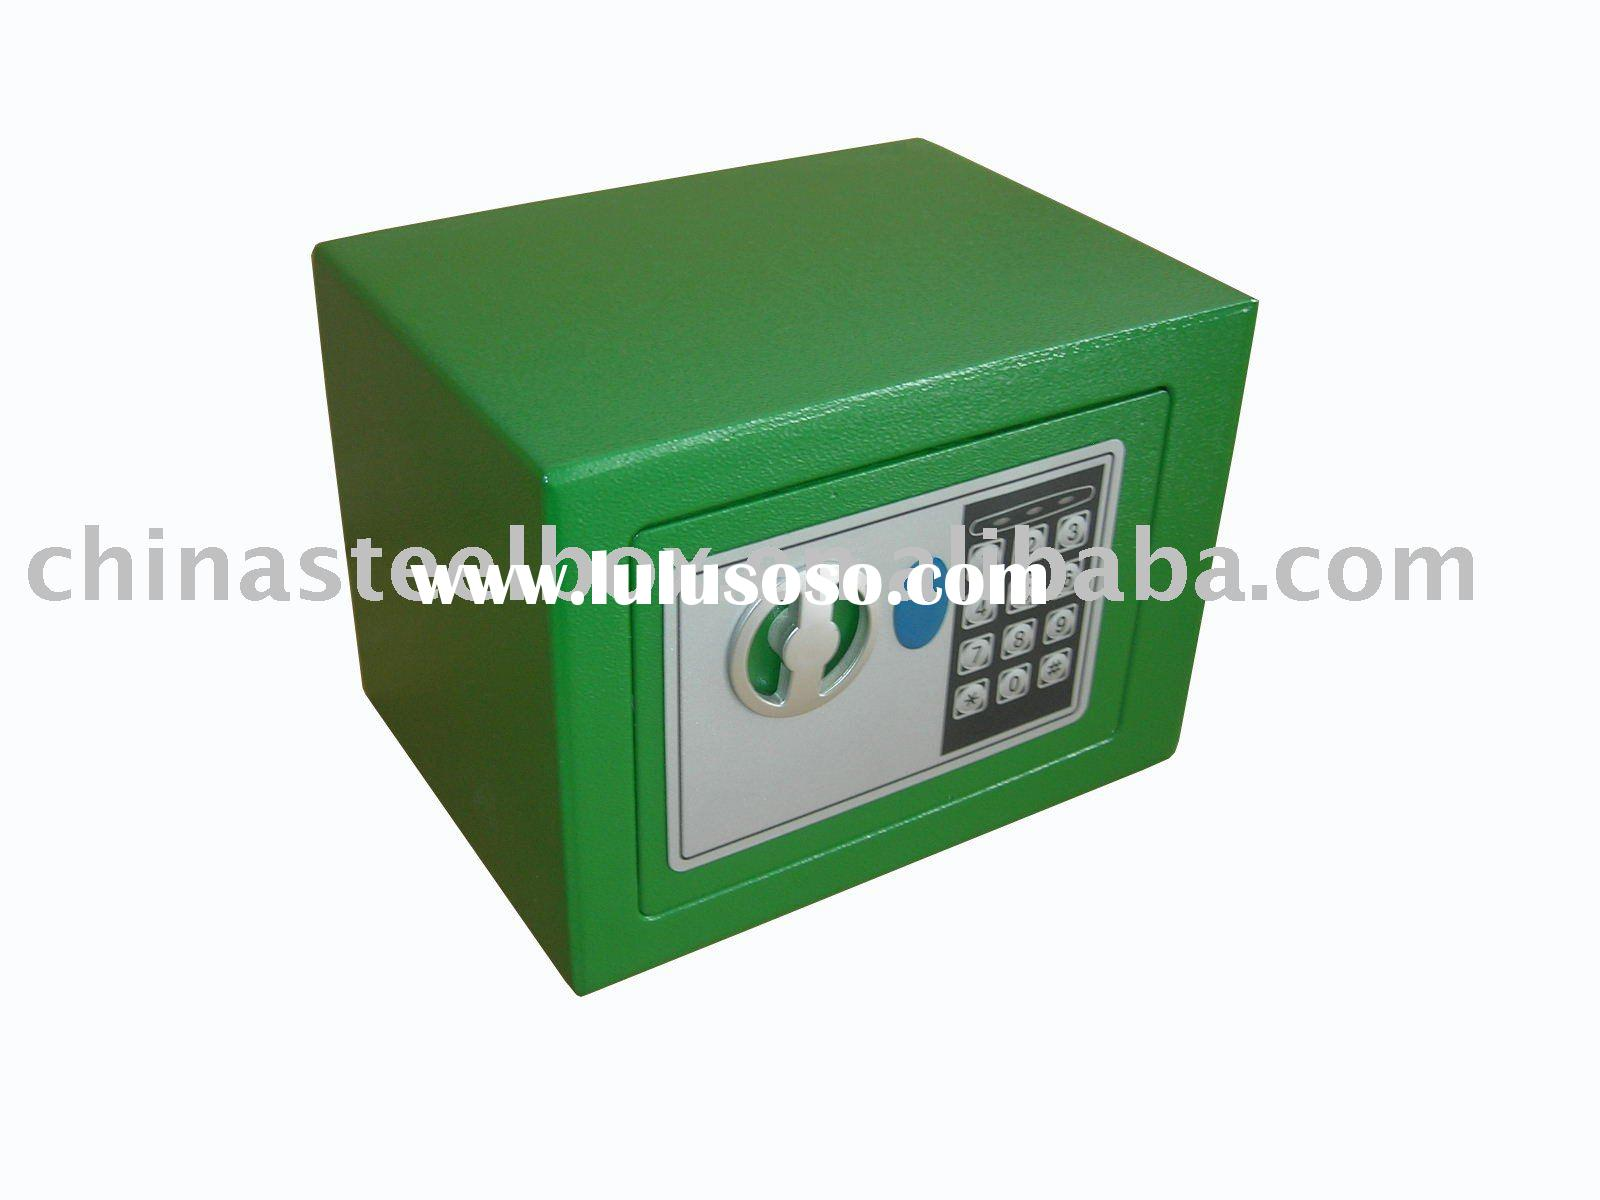 Mini Electronic Safe